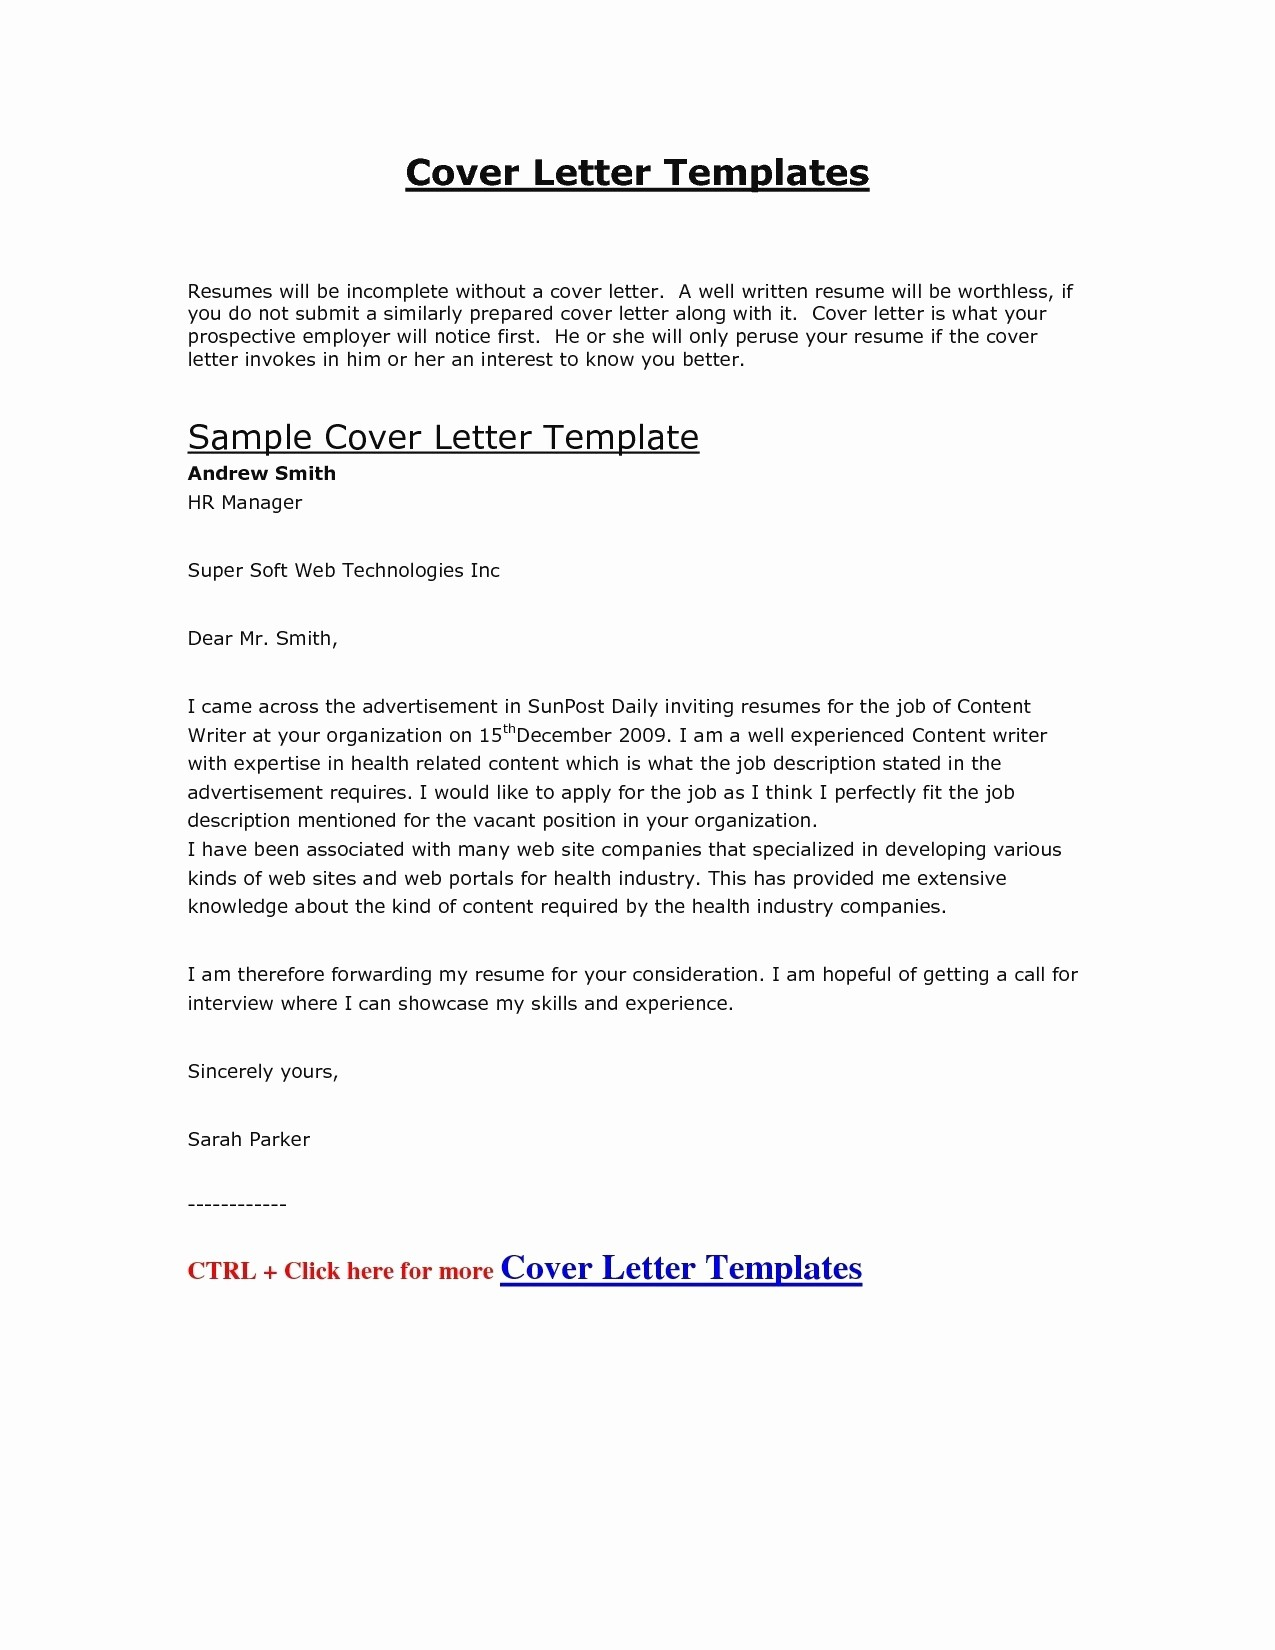 formal cover letter template Collection-Job Application Letter format Template Copy Cover Letter Template Hr Fresh A Good Cover Letter Sample 9-b